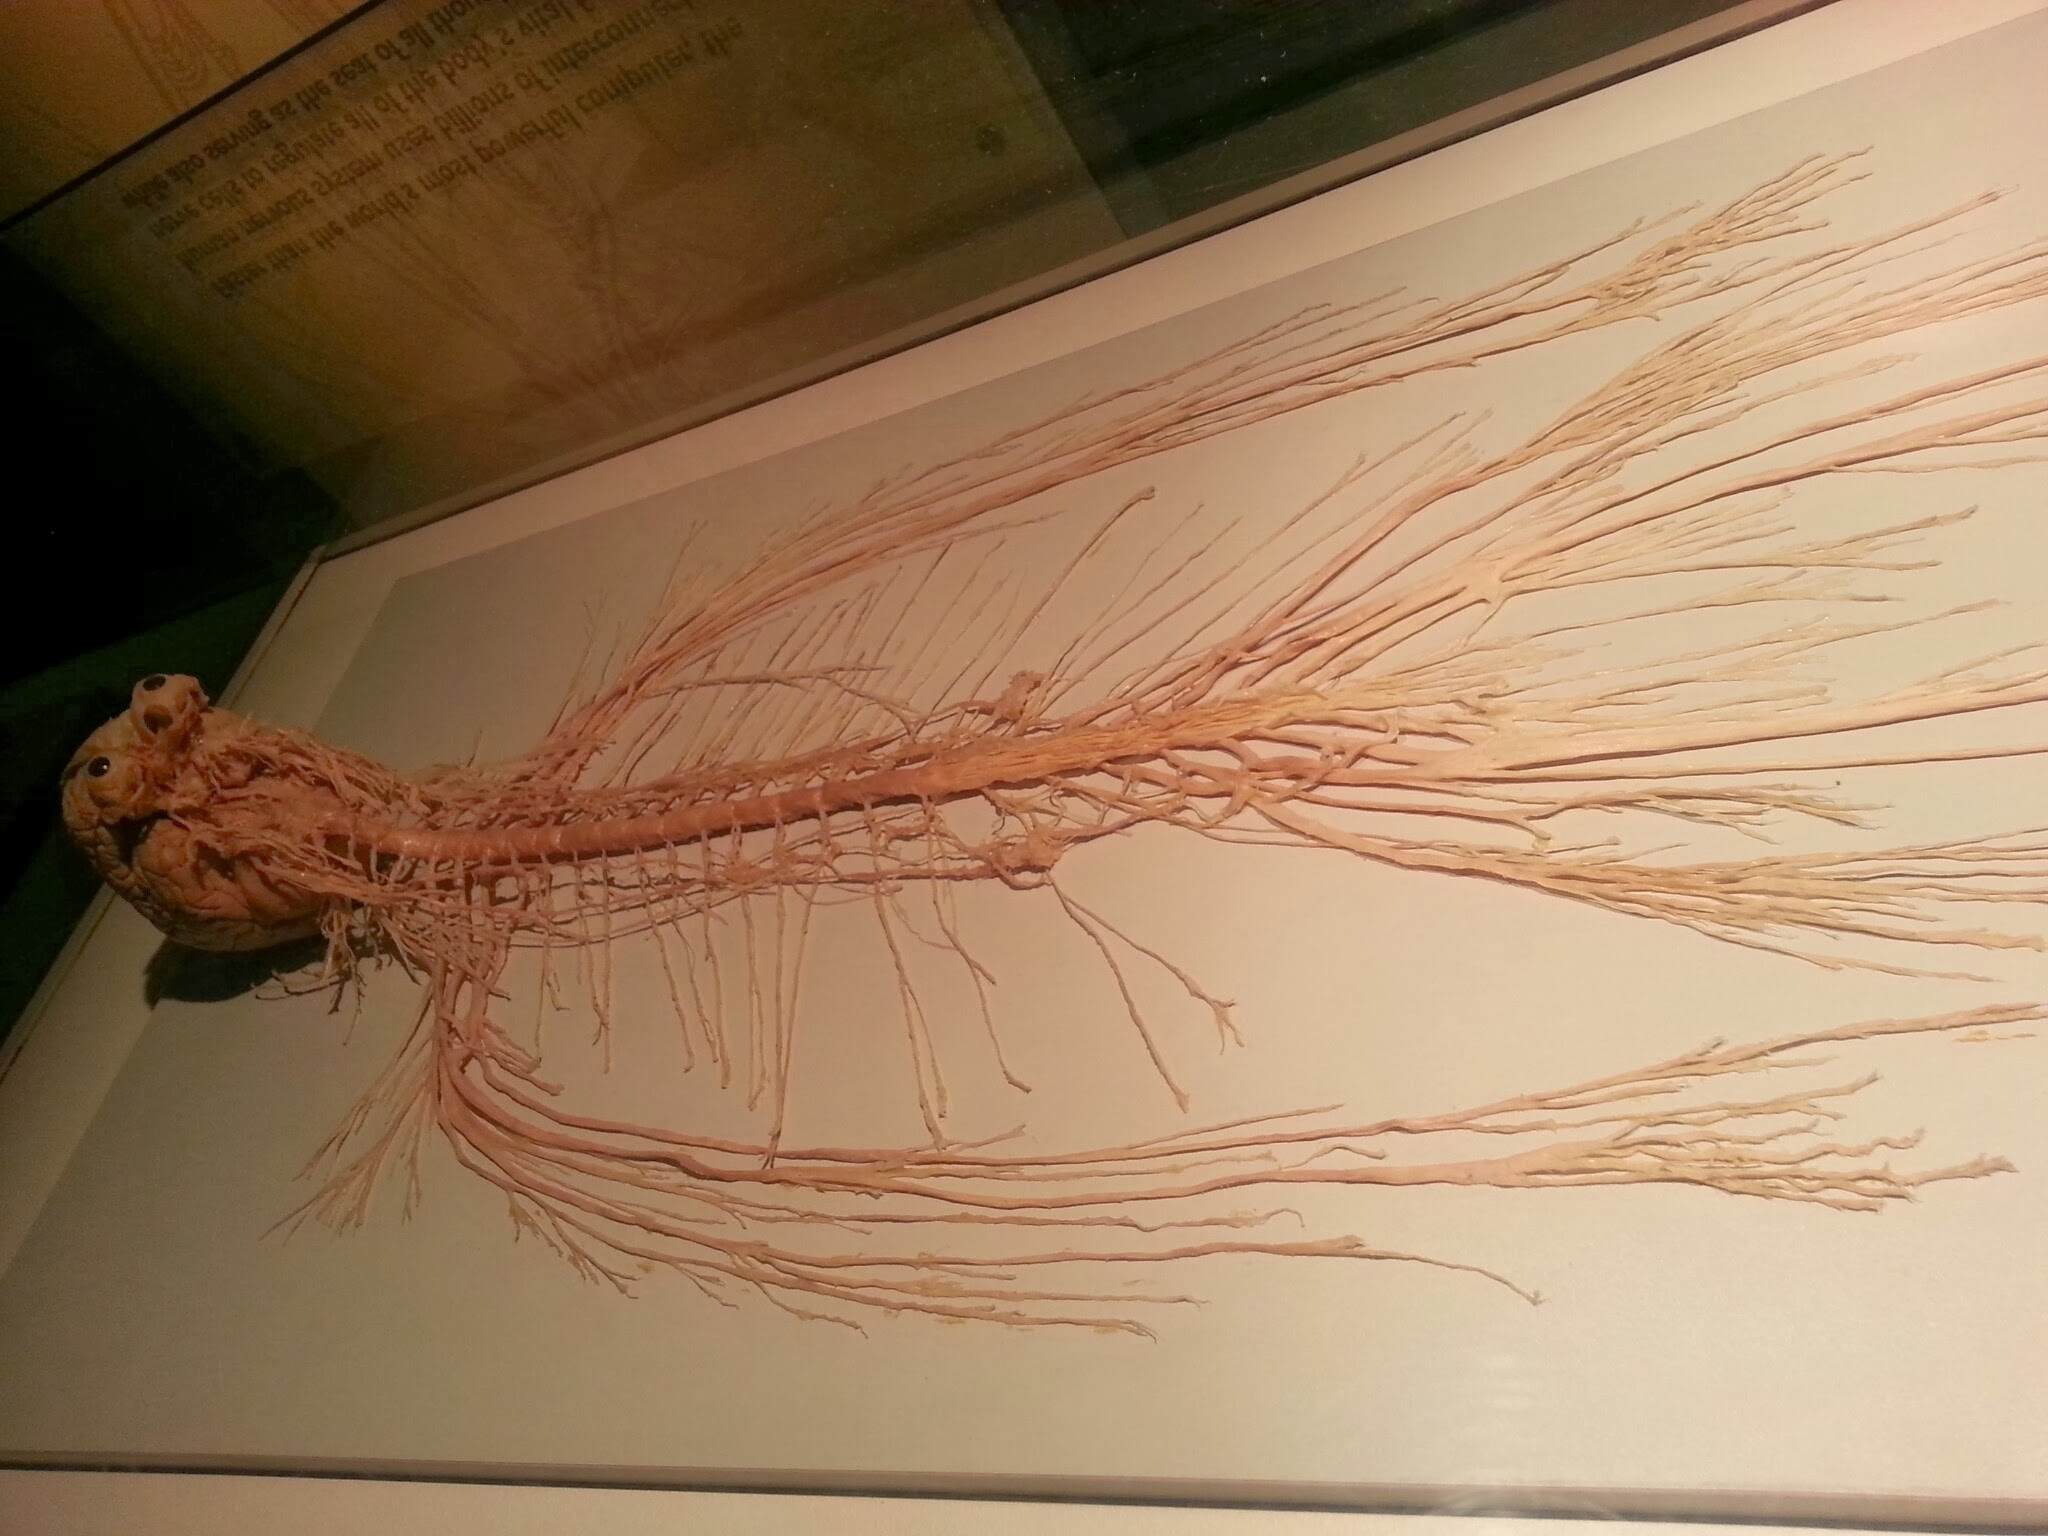 21 - Our Nervous System